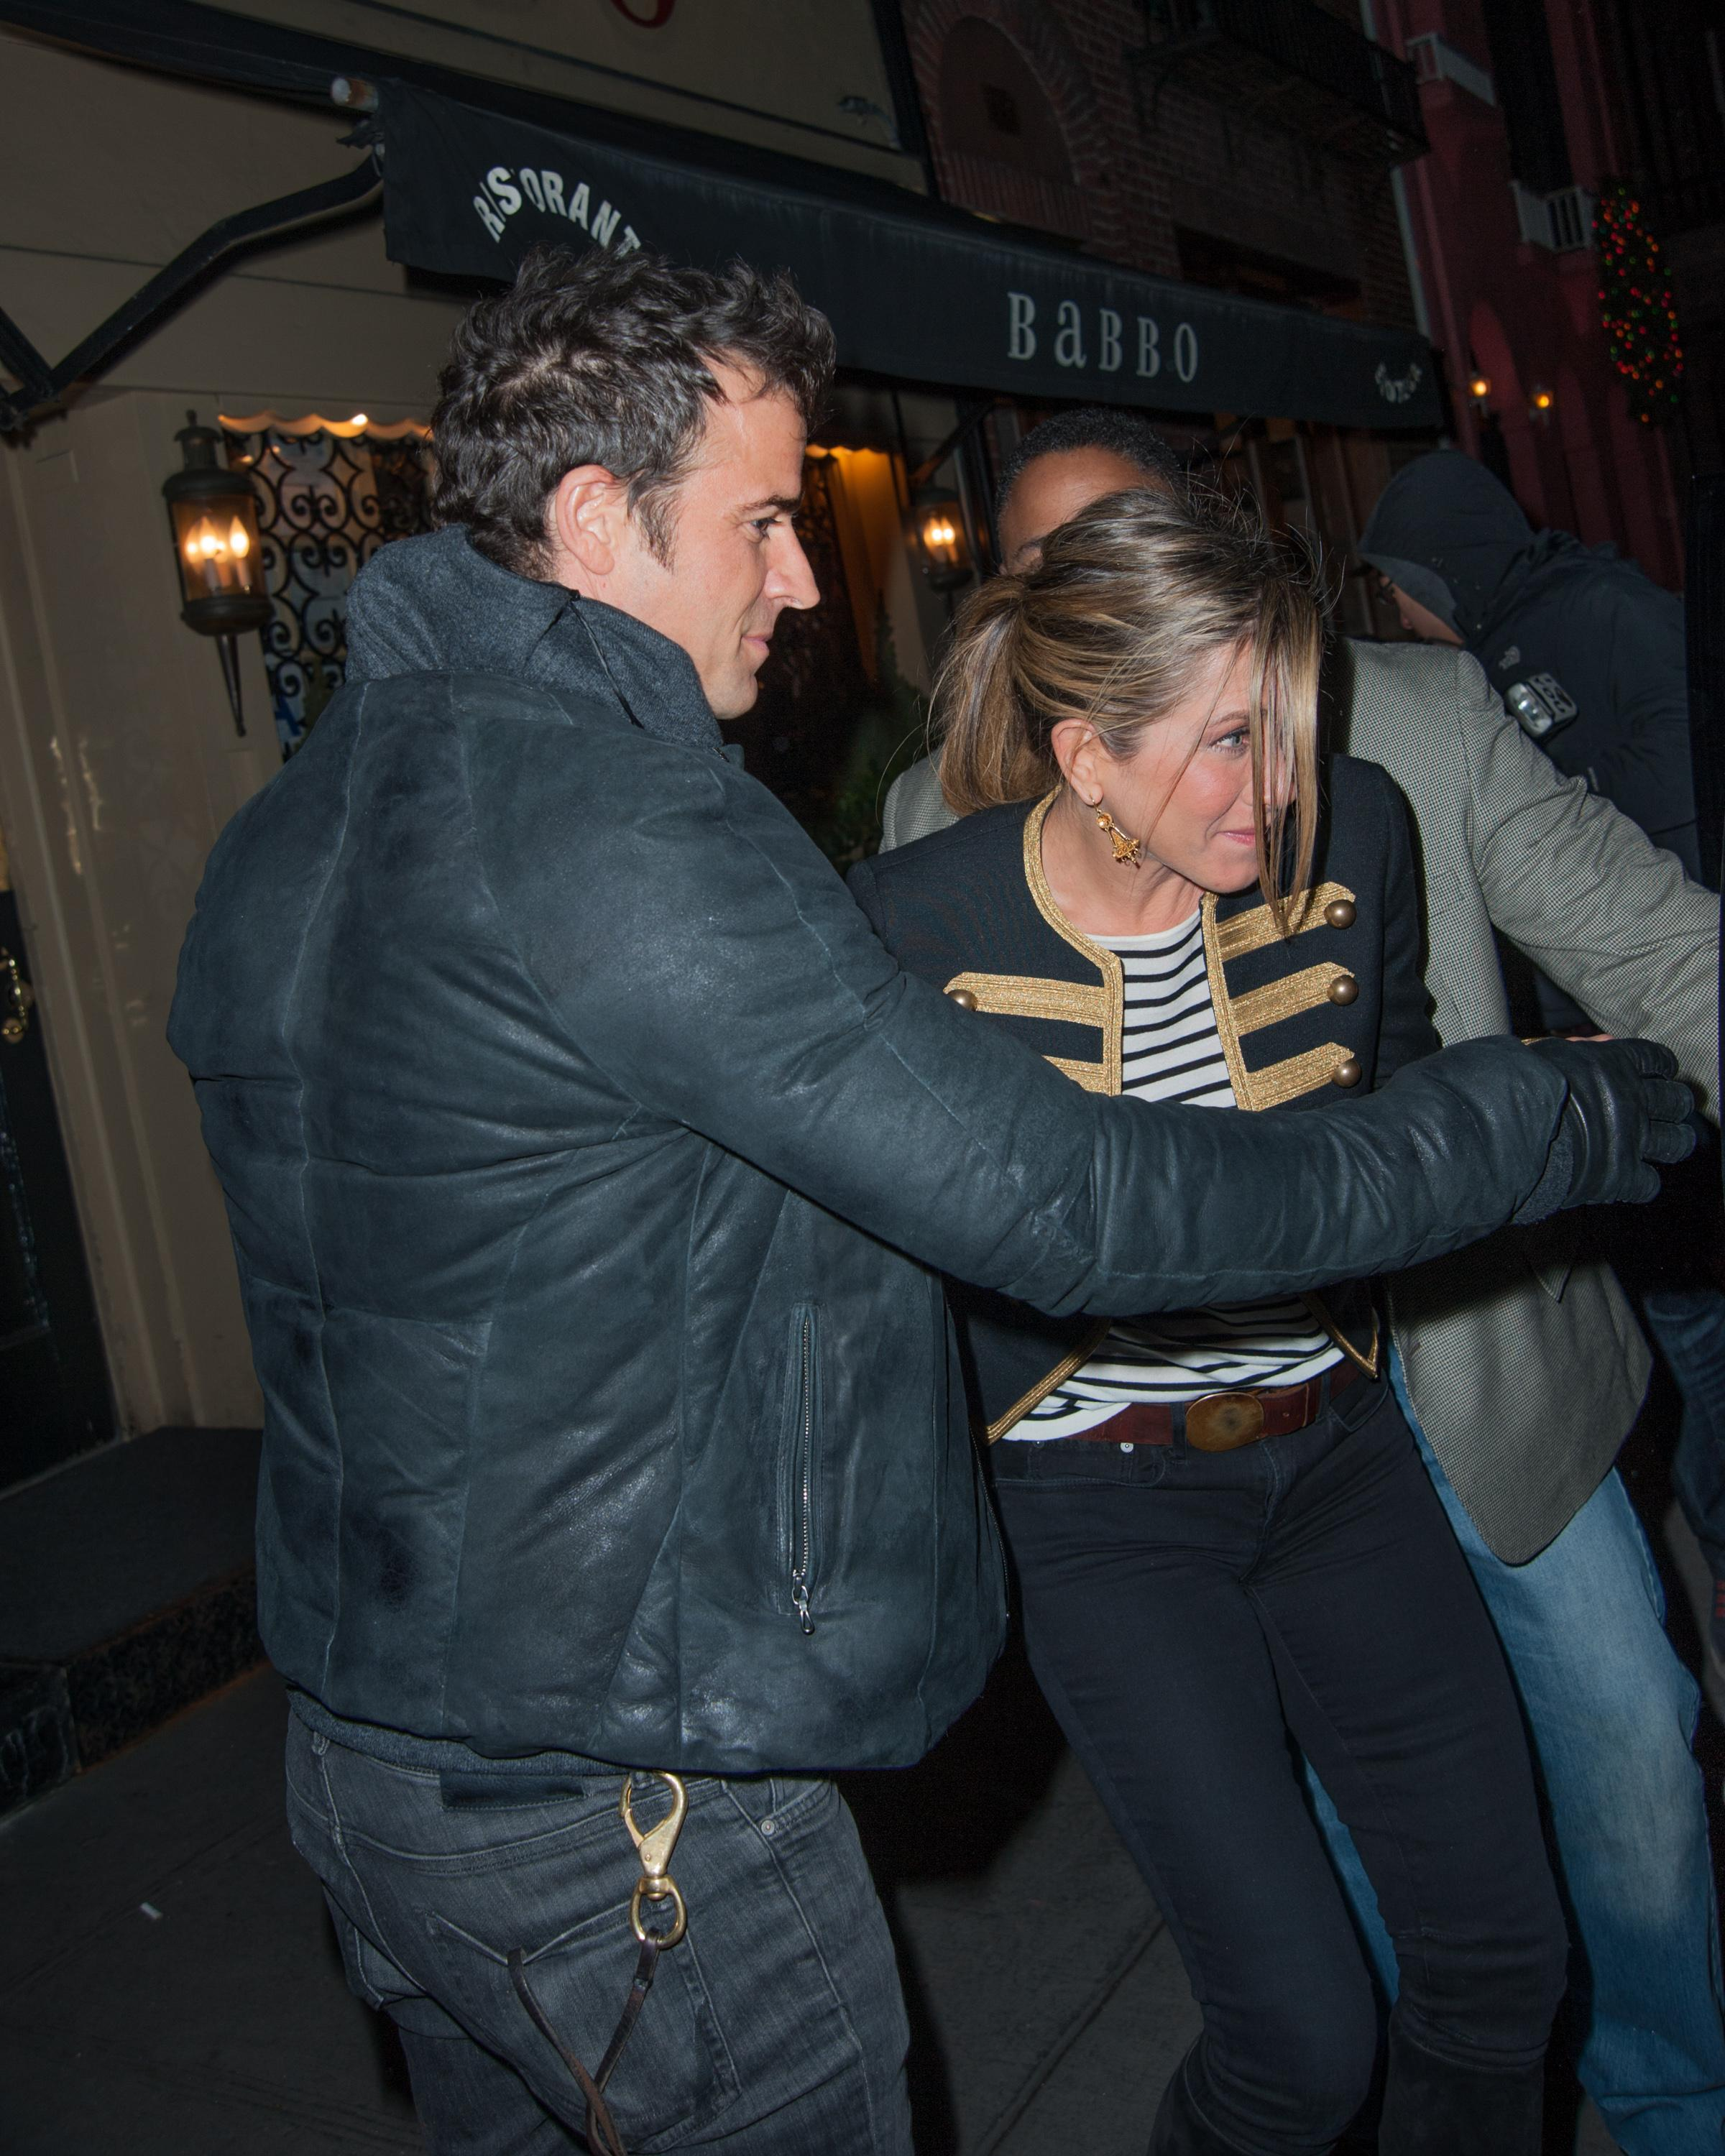 EXCLUSIVE: Justin Theroux and Jennifer Aniston leaving Babbo Ristorante in New York City **NO DAILY MAIL SALES**